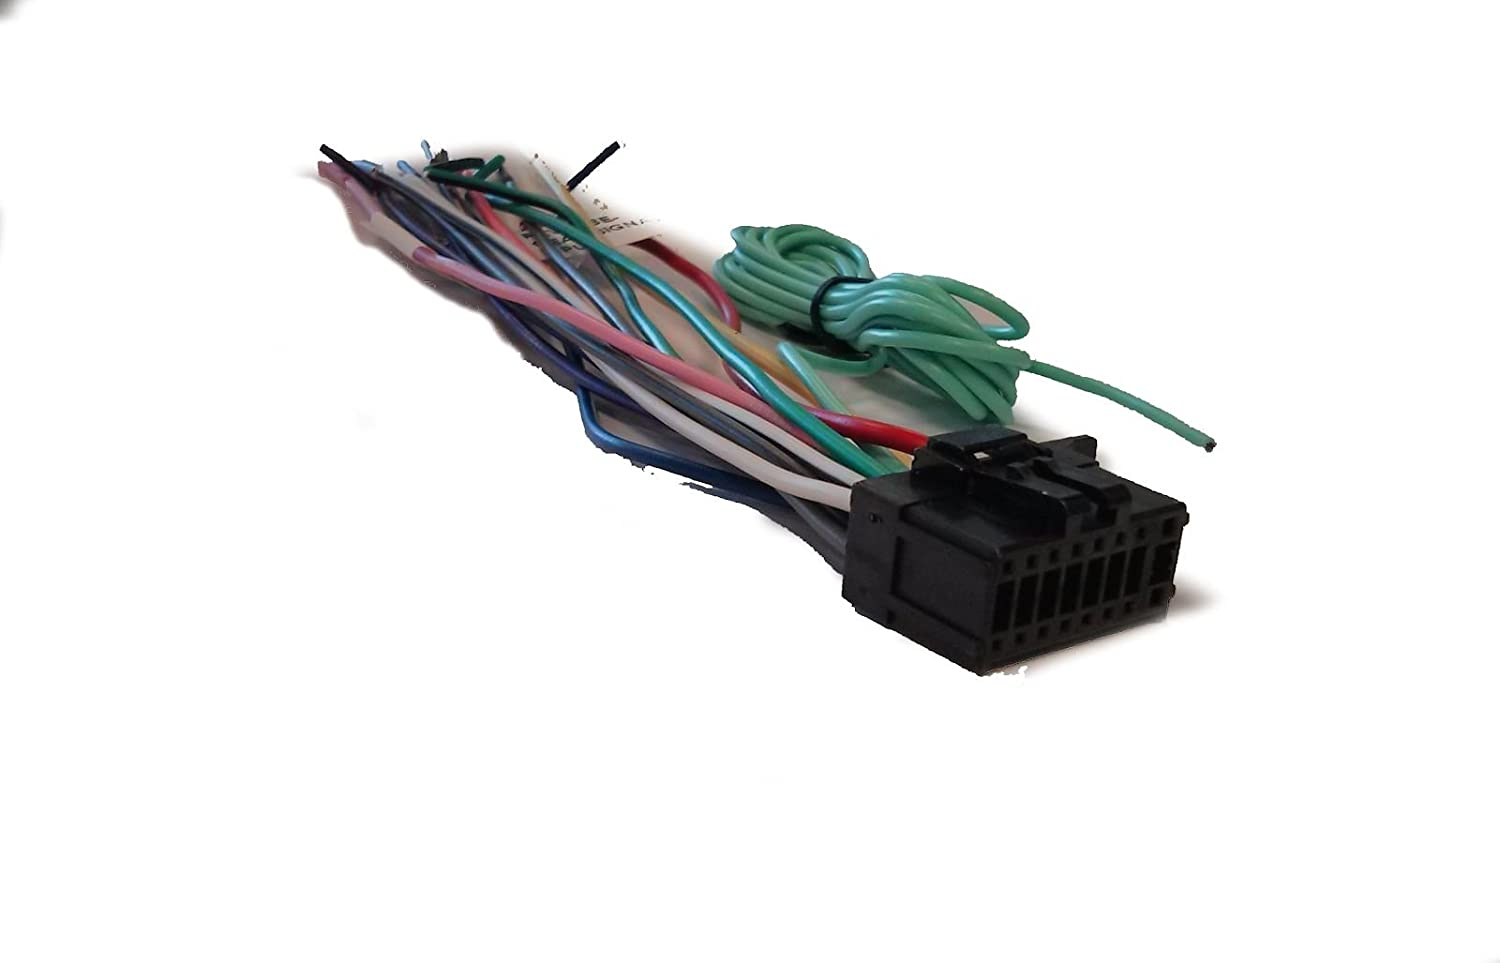 61s%2B2yUu BL._SL1500_ amazon com pioneer wire harness for sph da210 sph da100 sph da200 sph-da100 wiring harness at creativeand.co